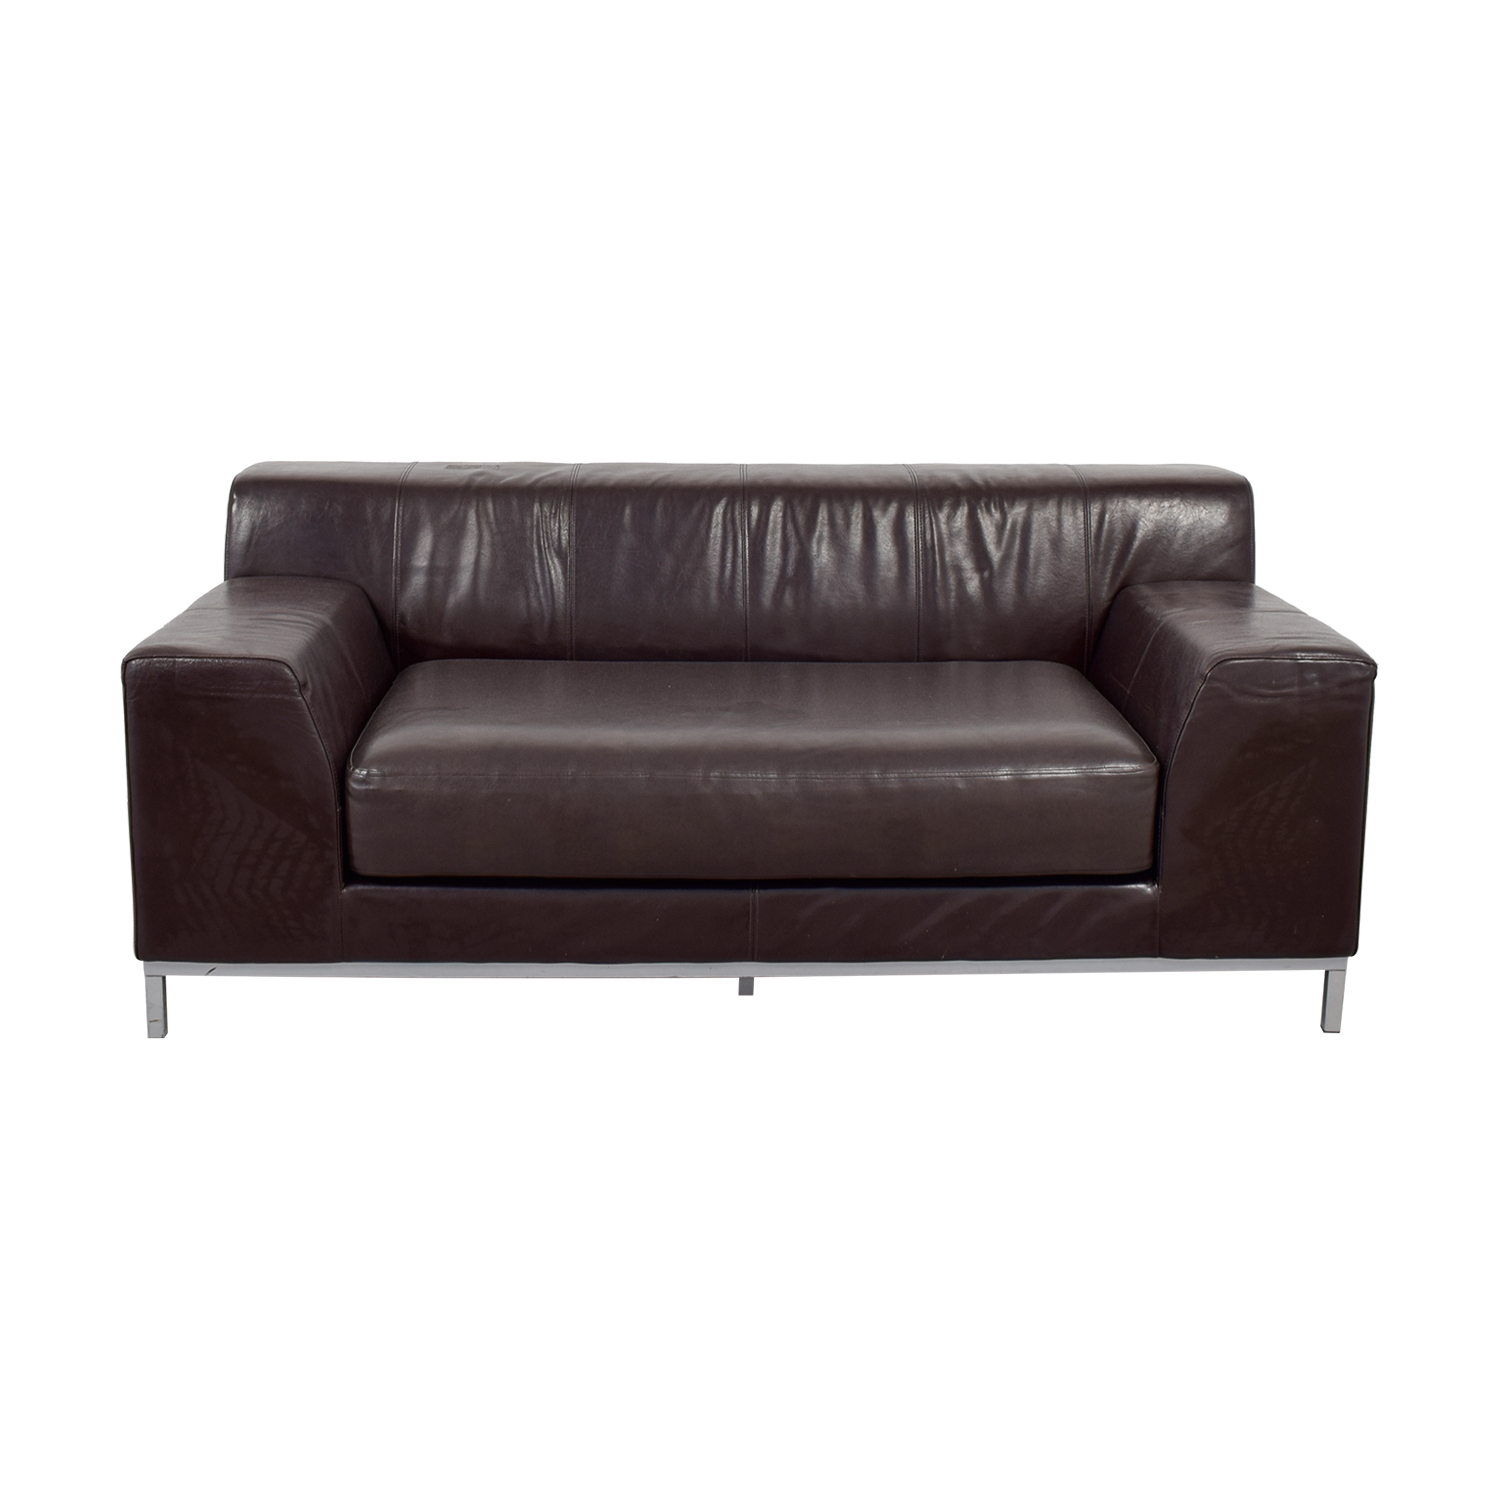 IKEA IKEA Kramfors Brown Leather Love Seat Classic Sofas